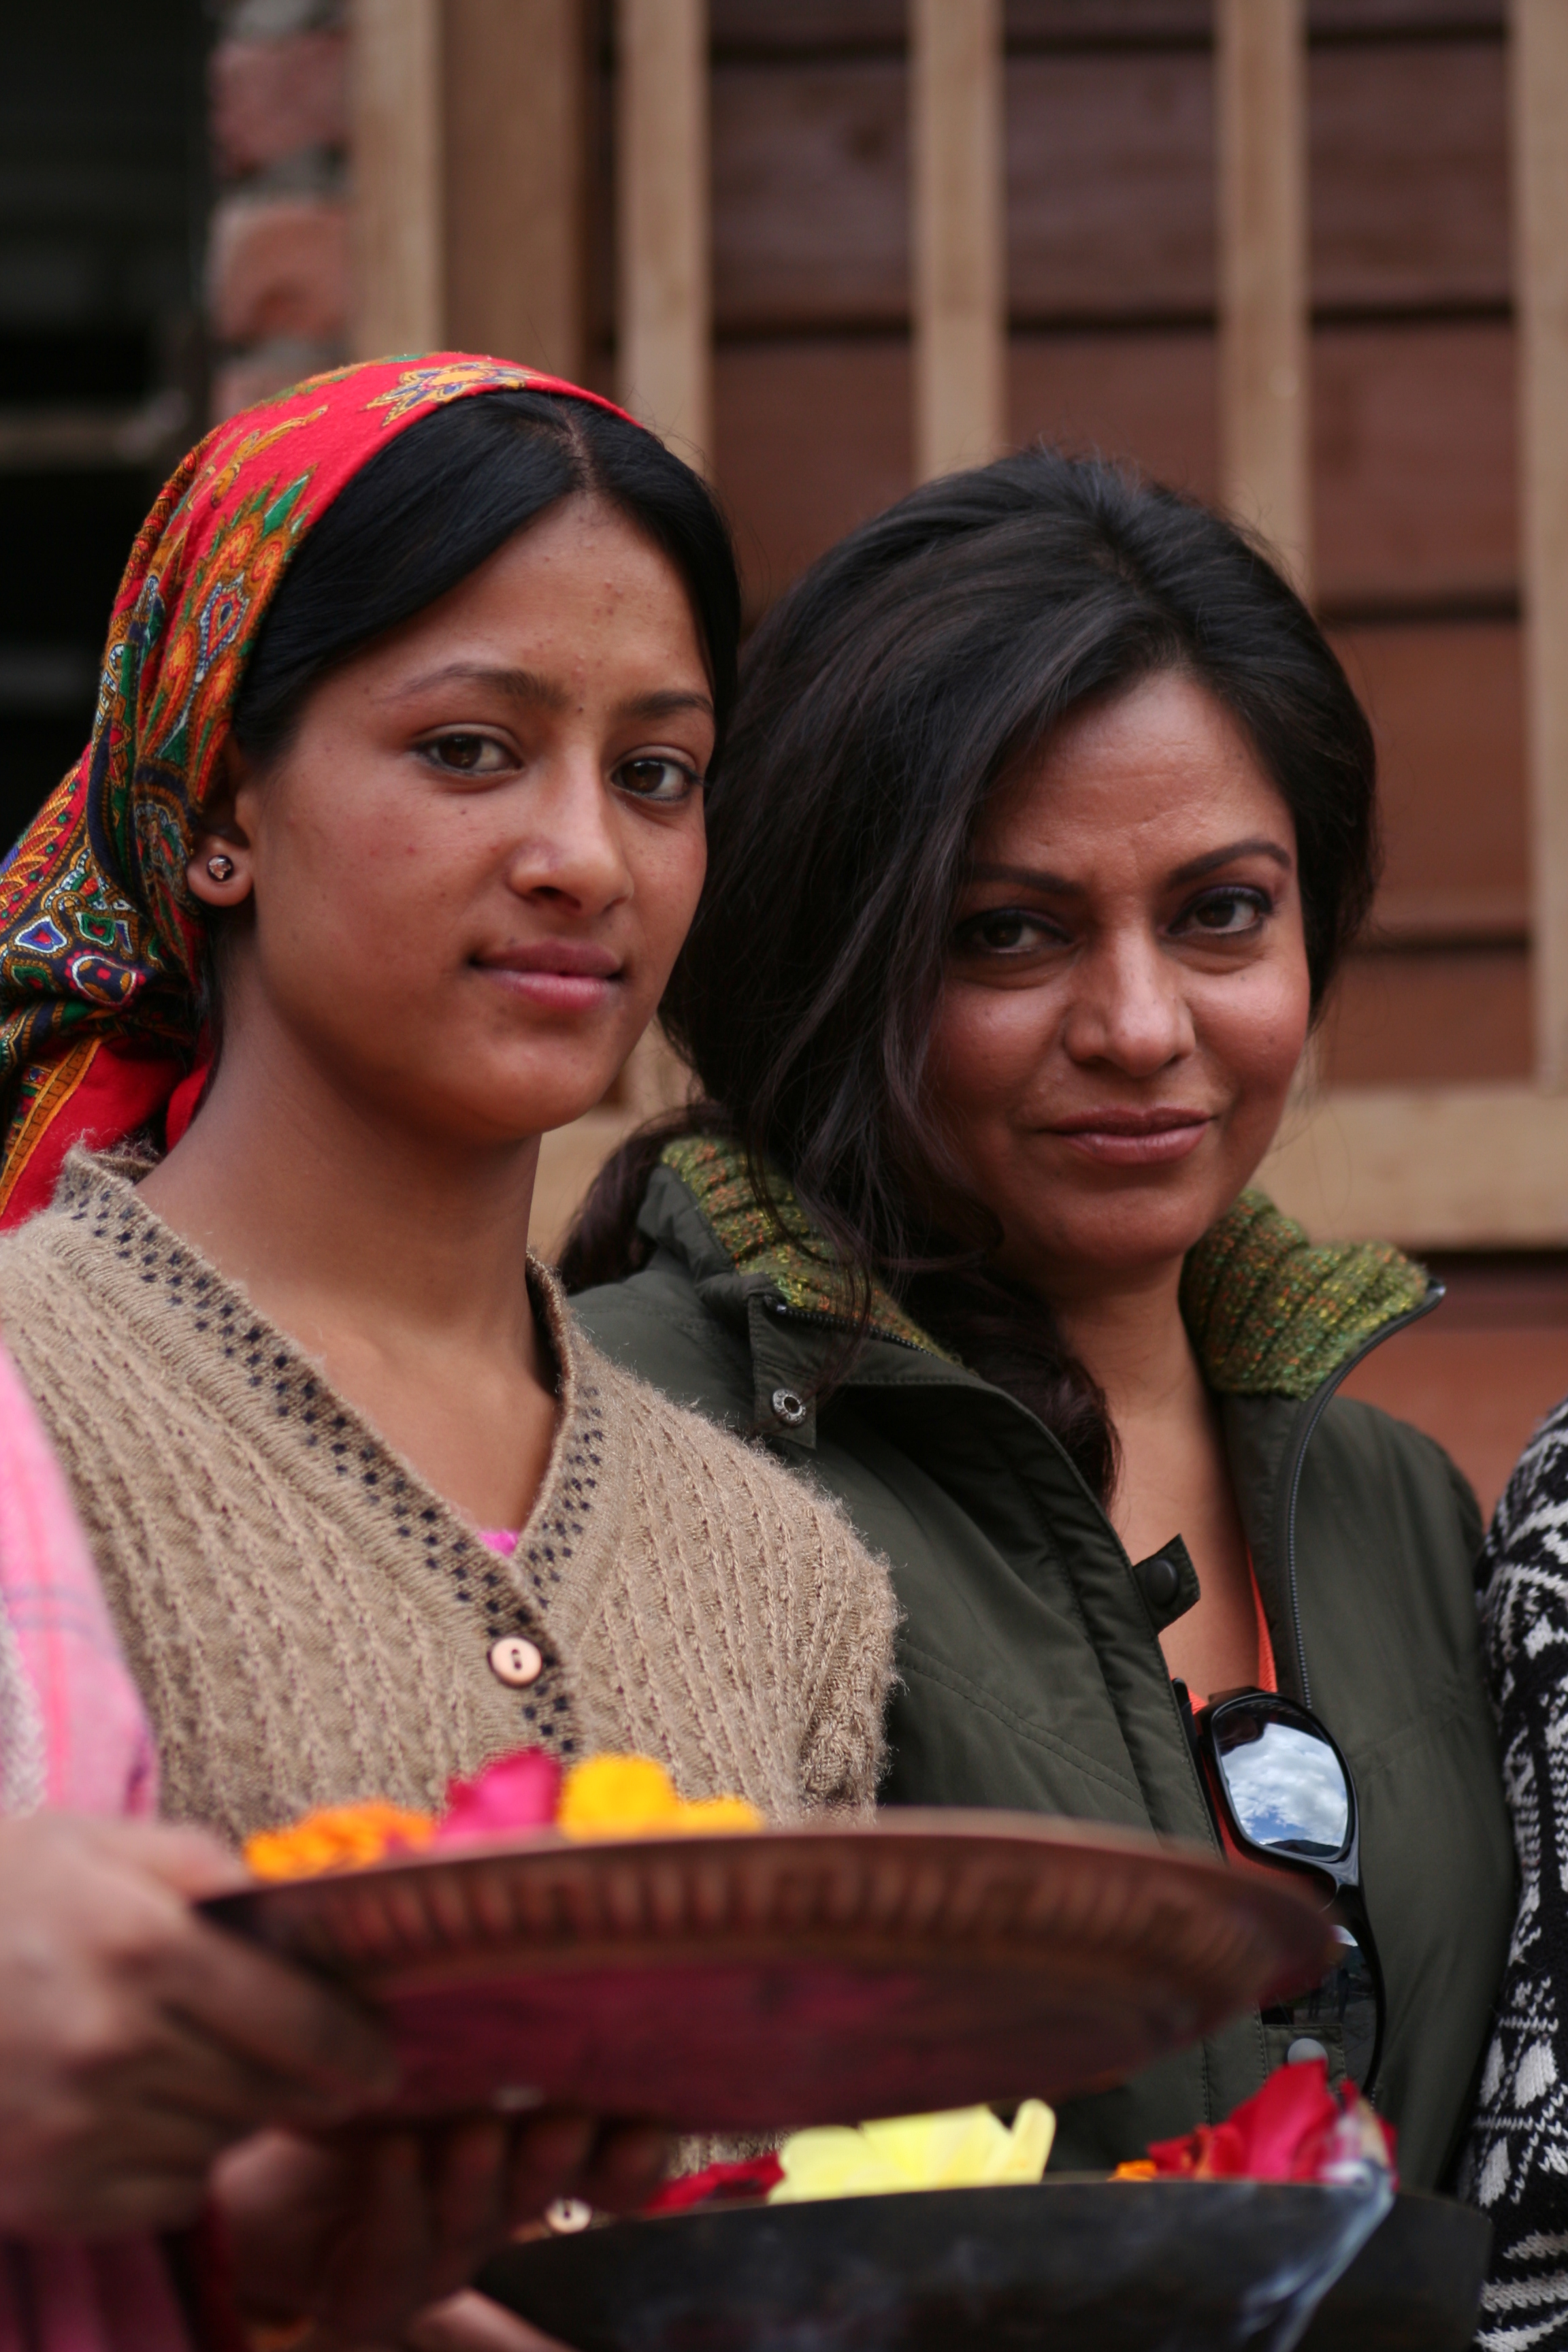 Anu Malhotra, Filmmaker on location 41